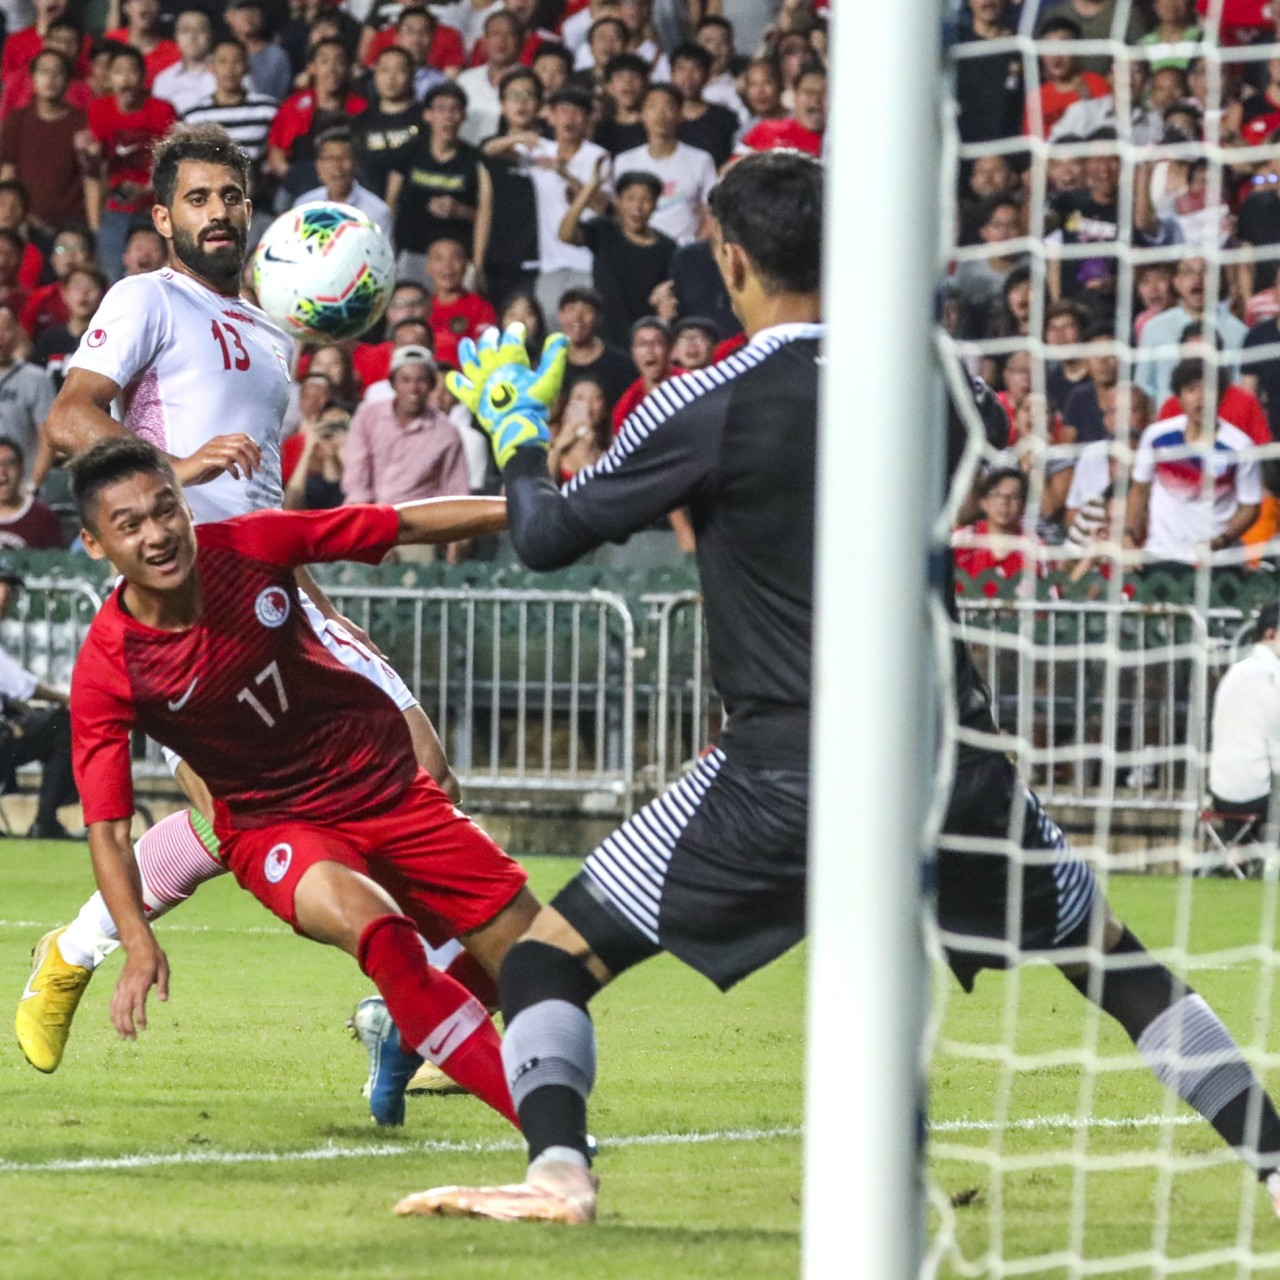 Hong Kong FA chairman says 'nothing we can do' over